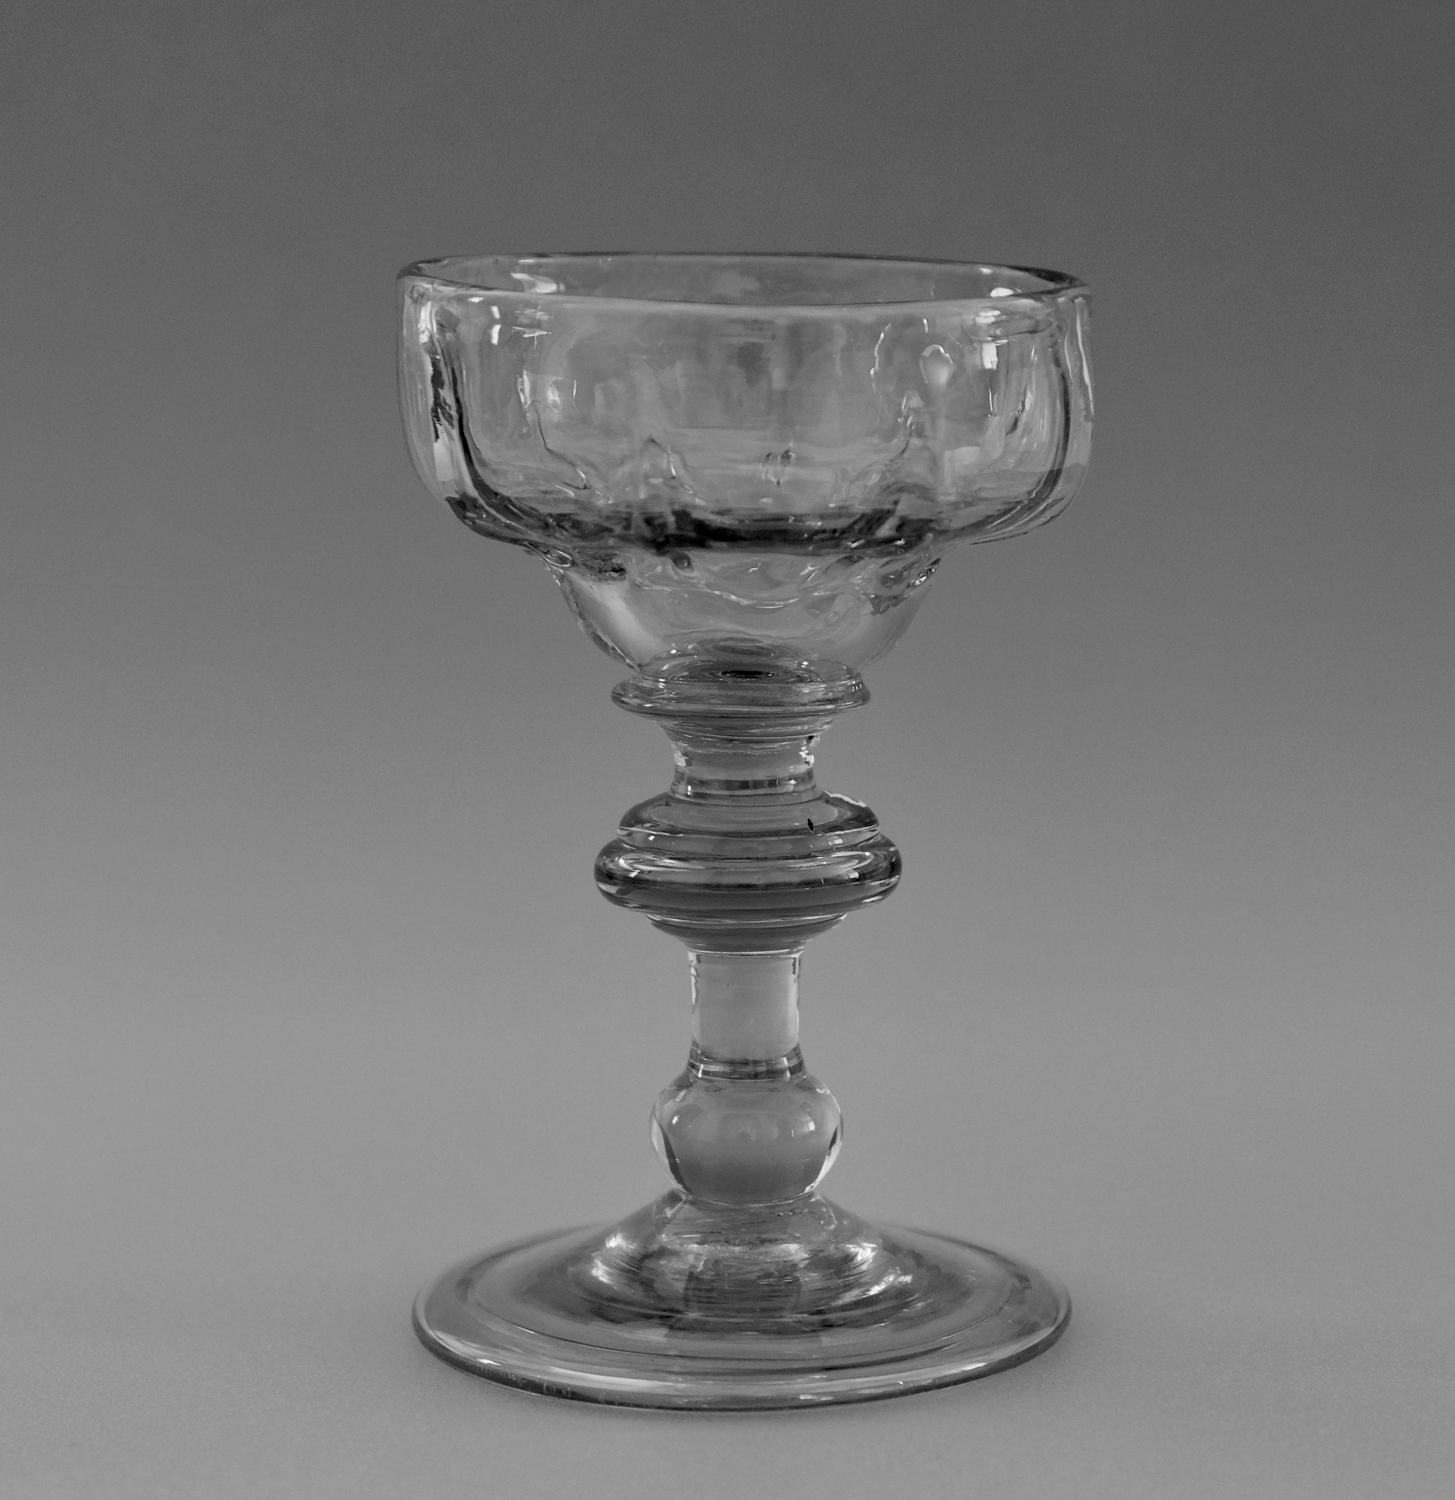 Baluster sweetmeat glass C1730-40